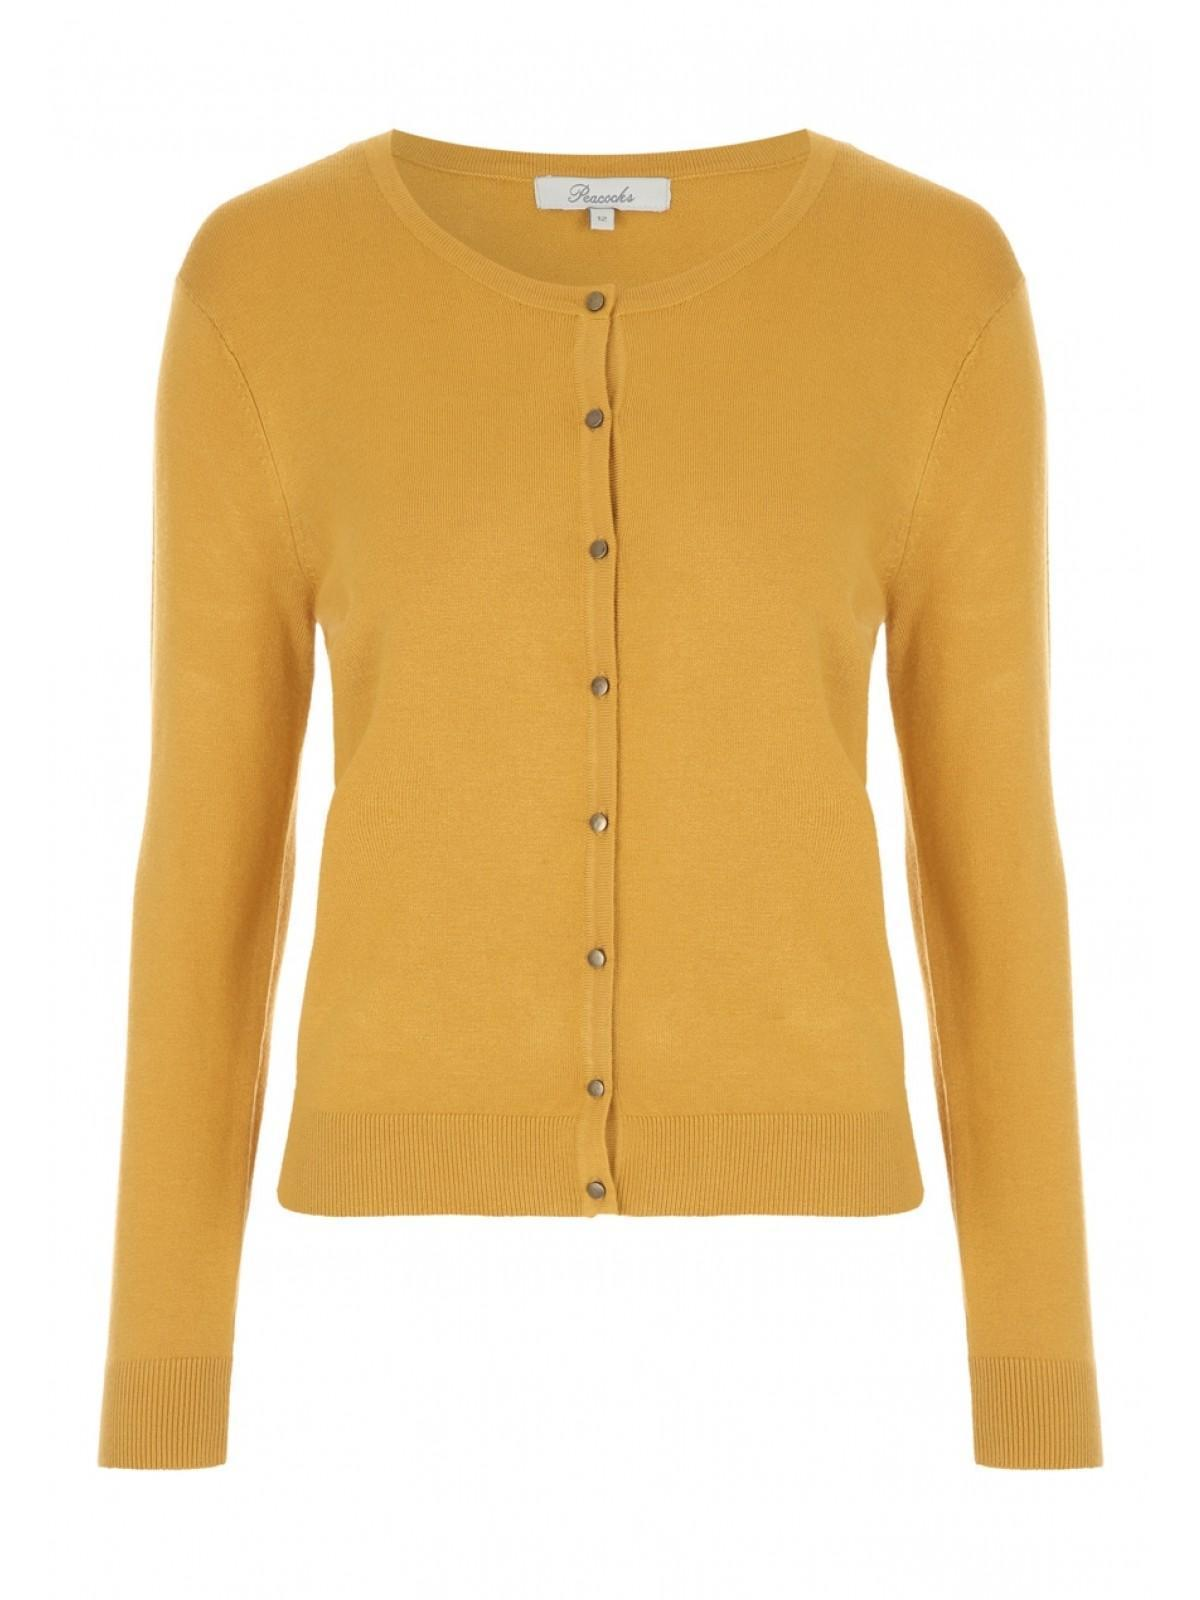 Womens Mustard Cardigan | Peacocks